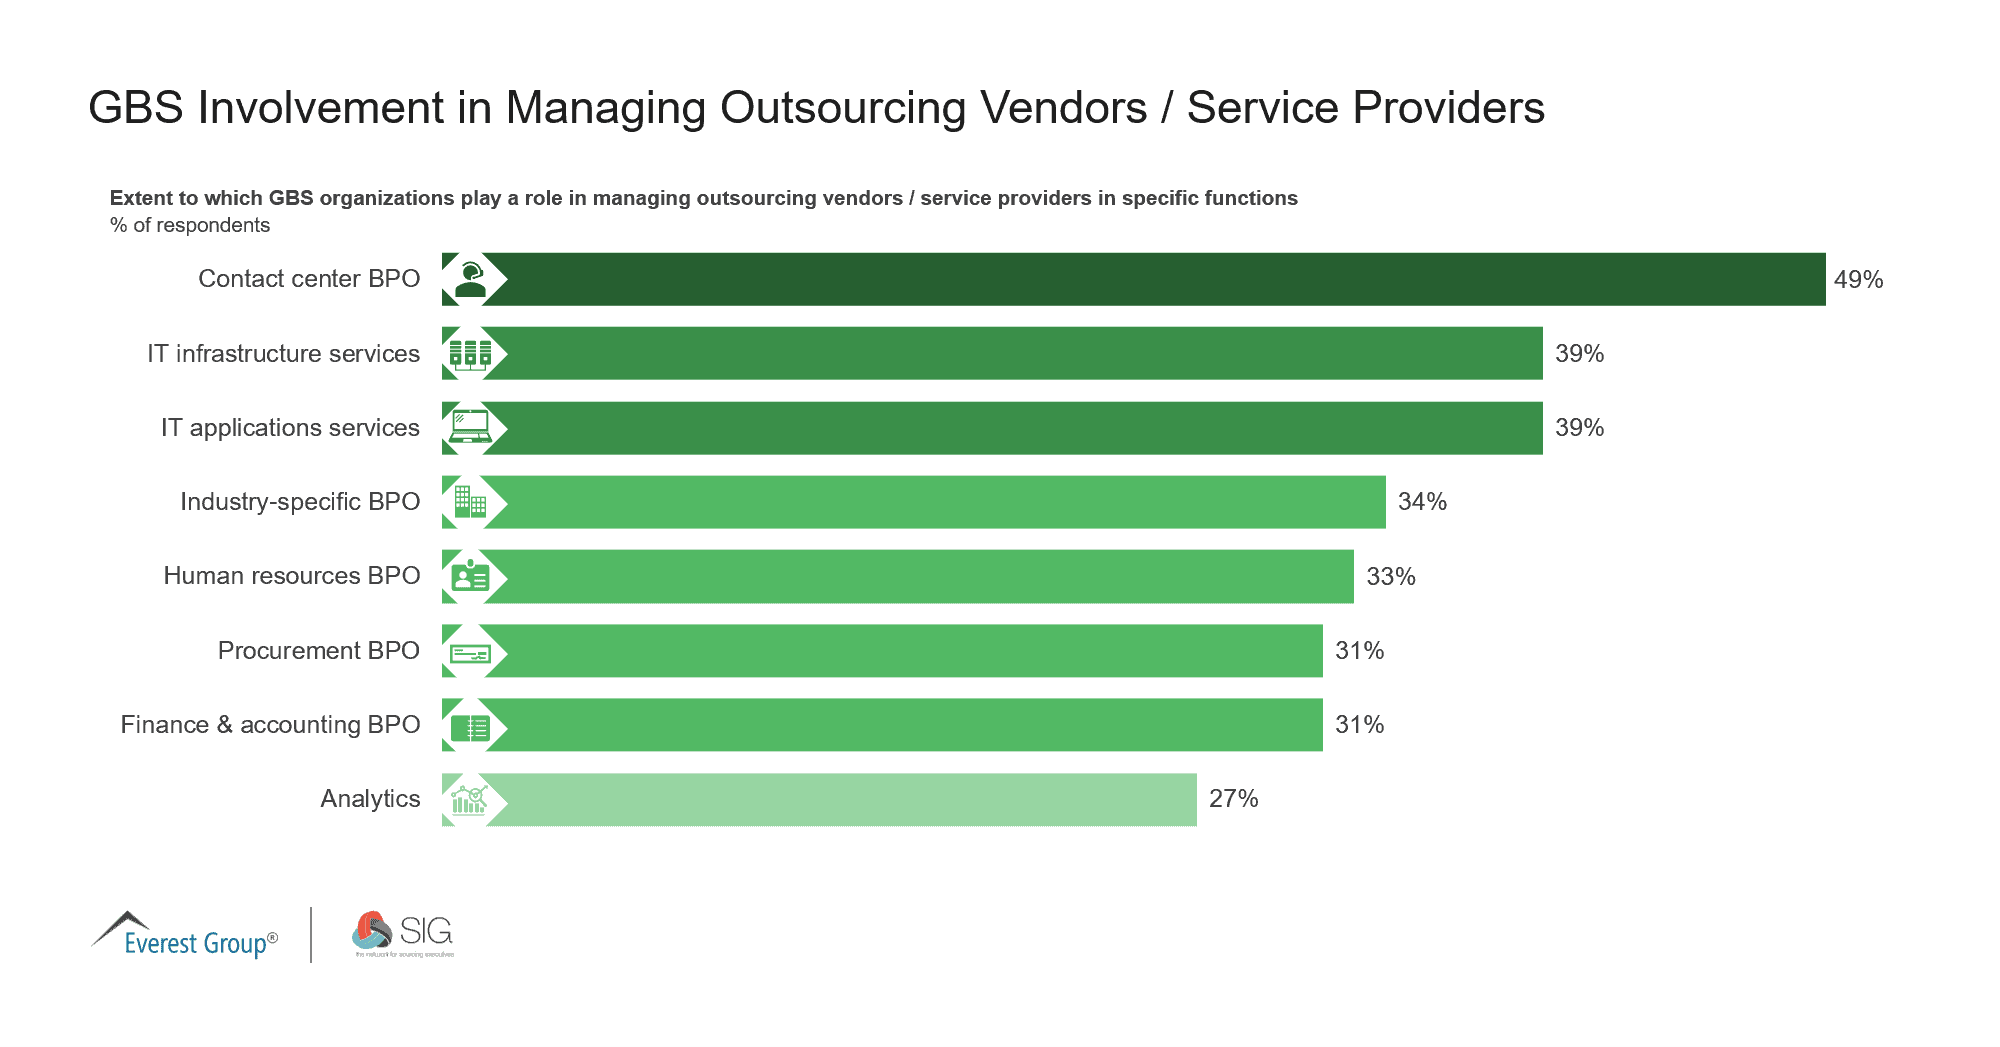 May 2021 Quick Poll | GBS Involvement in Managing Outsourcing Vendors - Service Providers